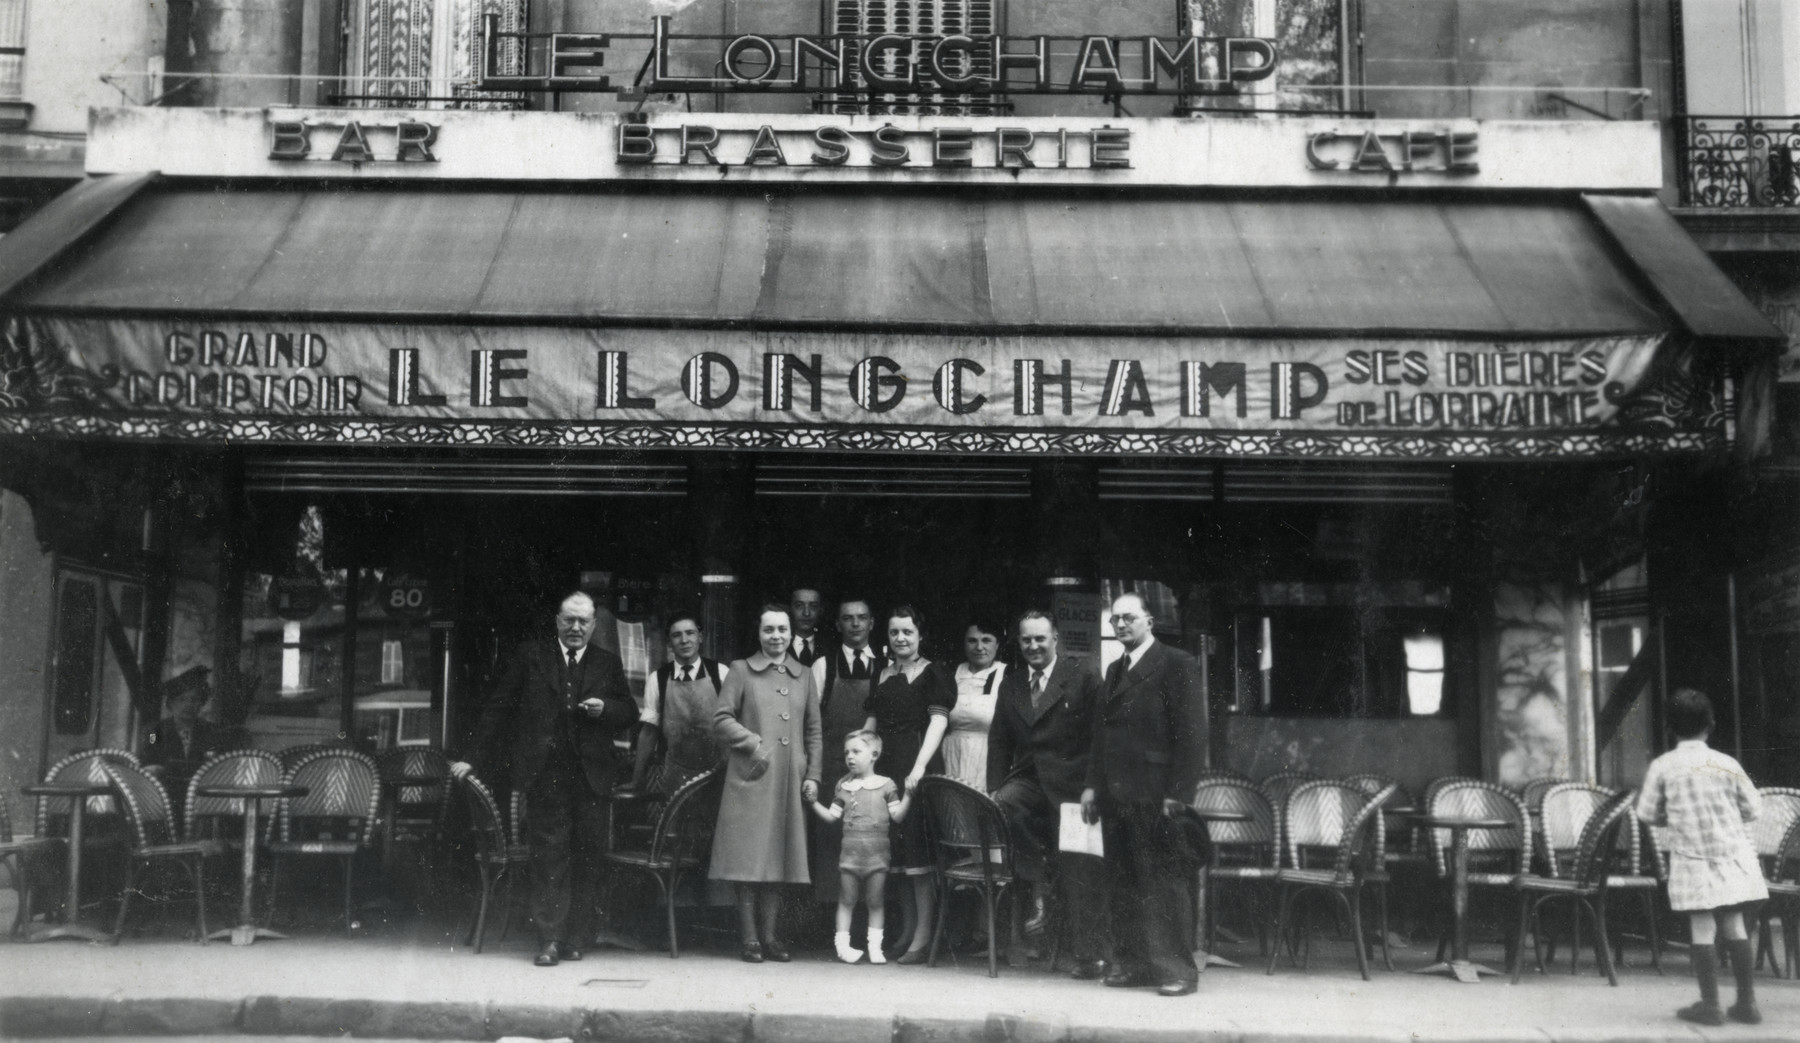 A group of friends poses outside a cafe in Paris.  Eduard Spira is pictured on the left.